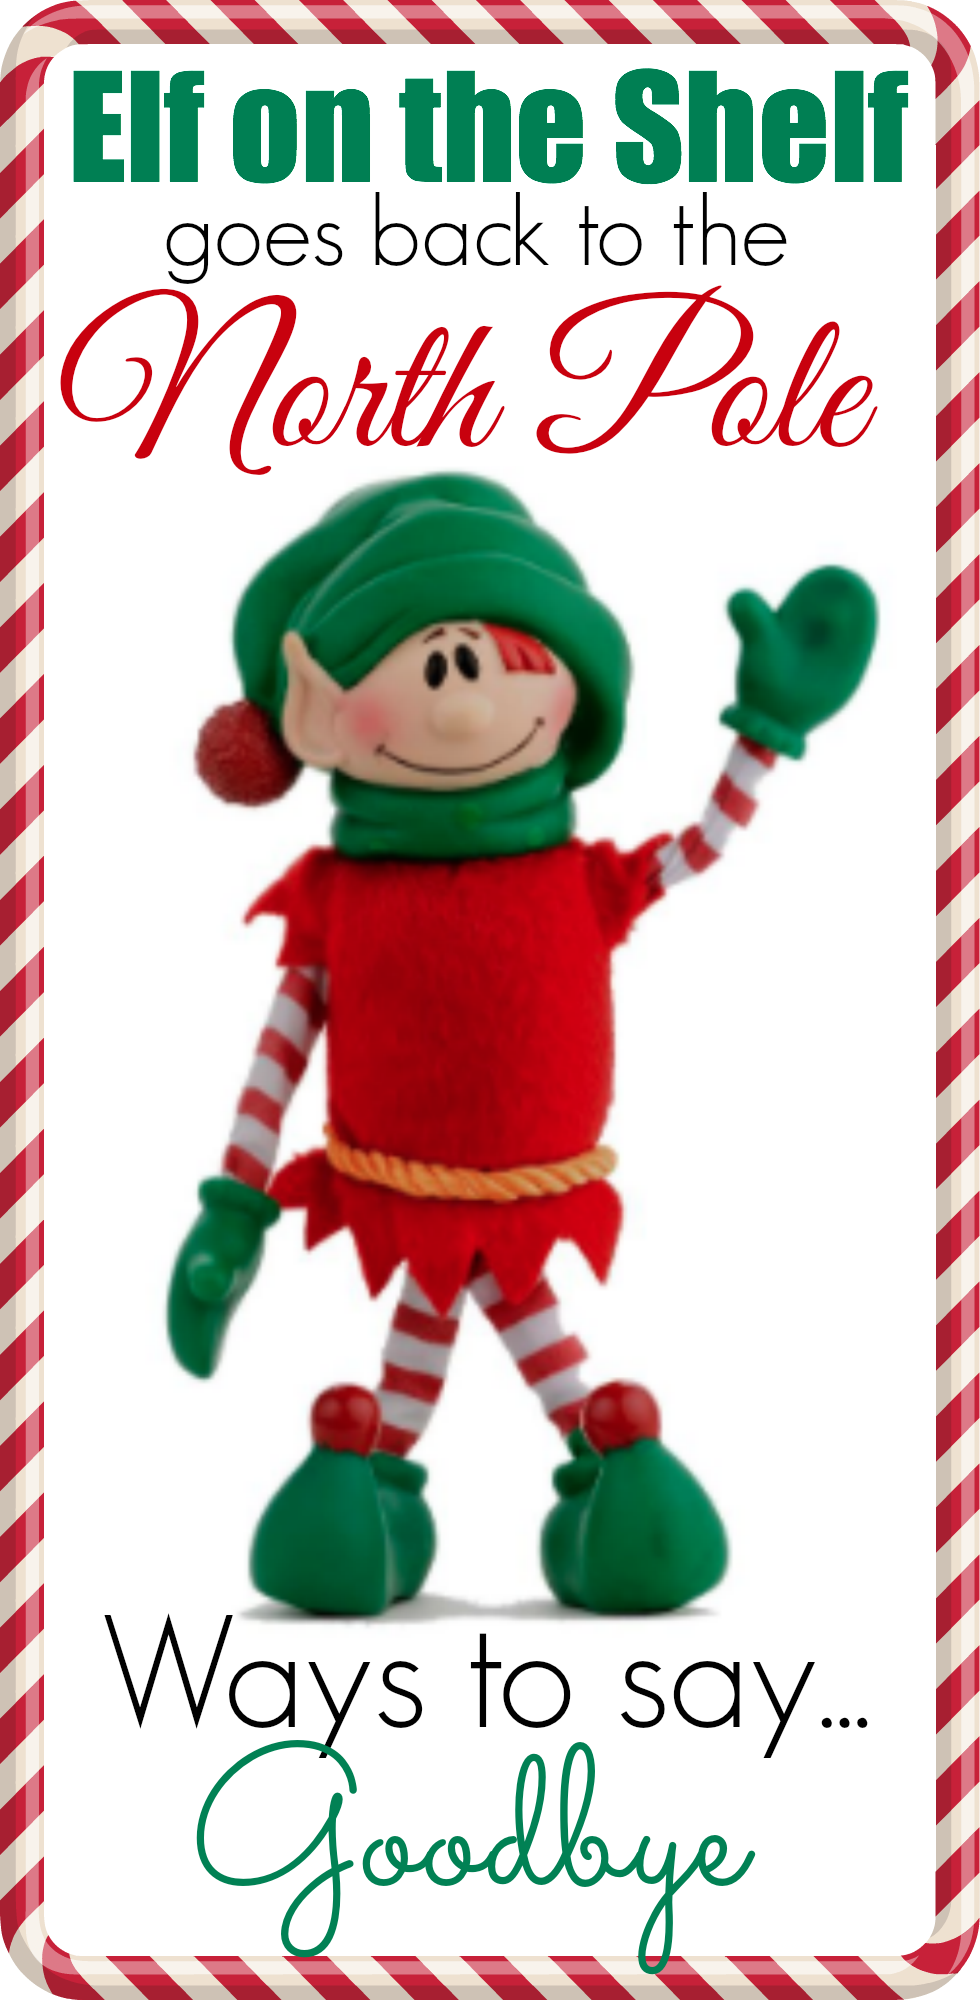 photograph about Printable Elf on the Shelf Goodbye Letter called Options for Claiming Goodbye toward your Elf upon the Shelf